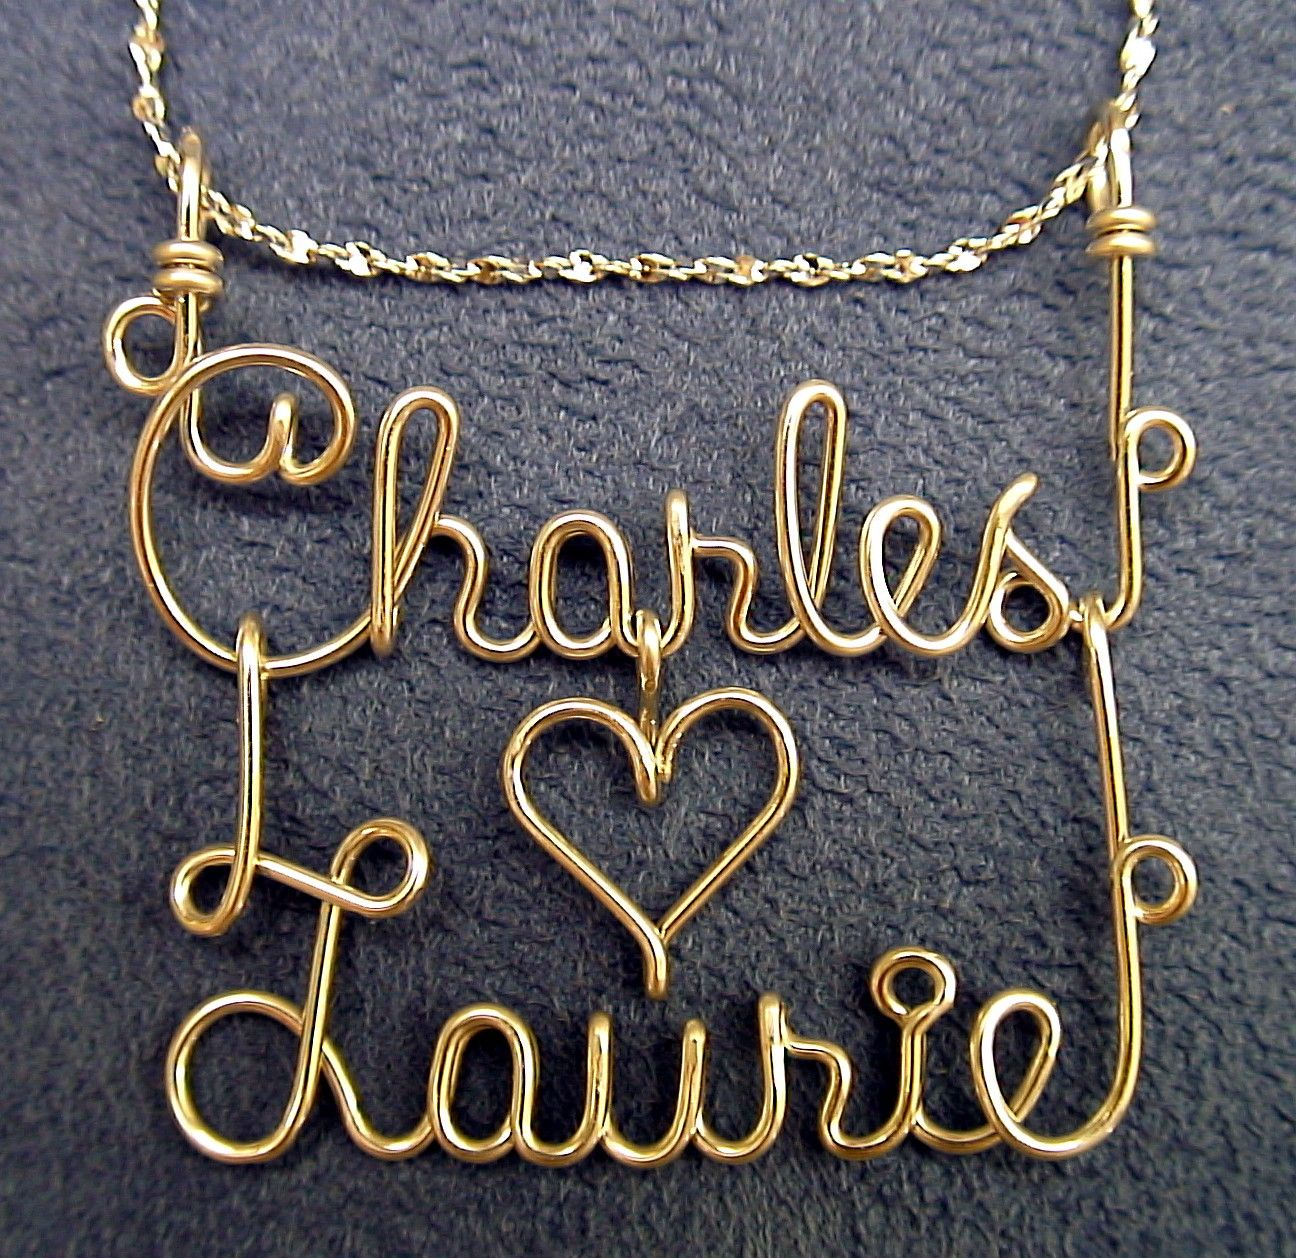 pinterest silver wire jewelry hearts | Silver or Gold Wire Couples ...